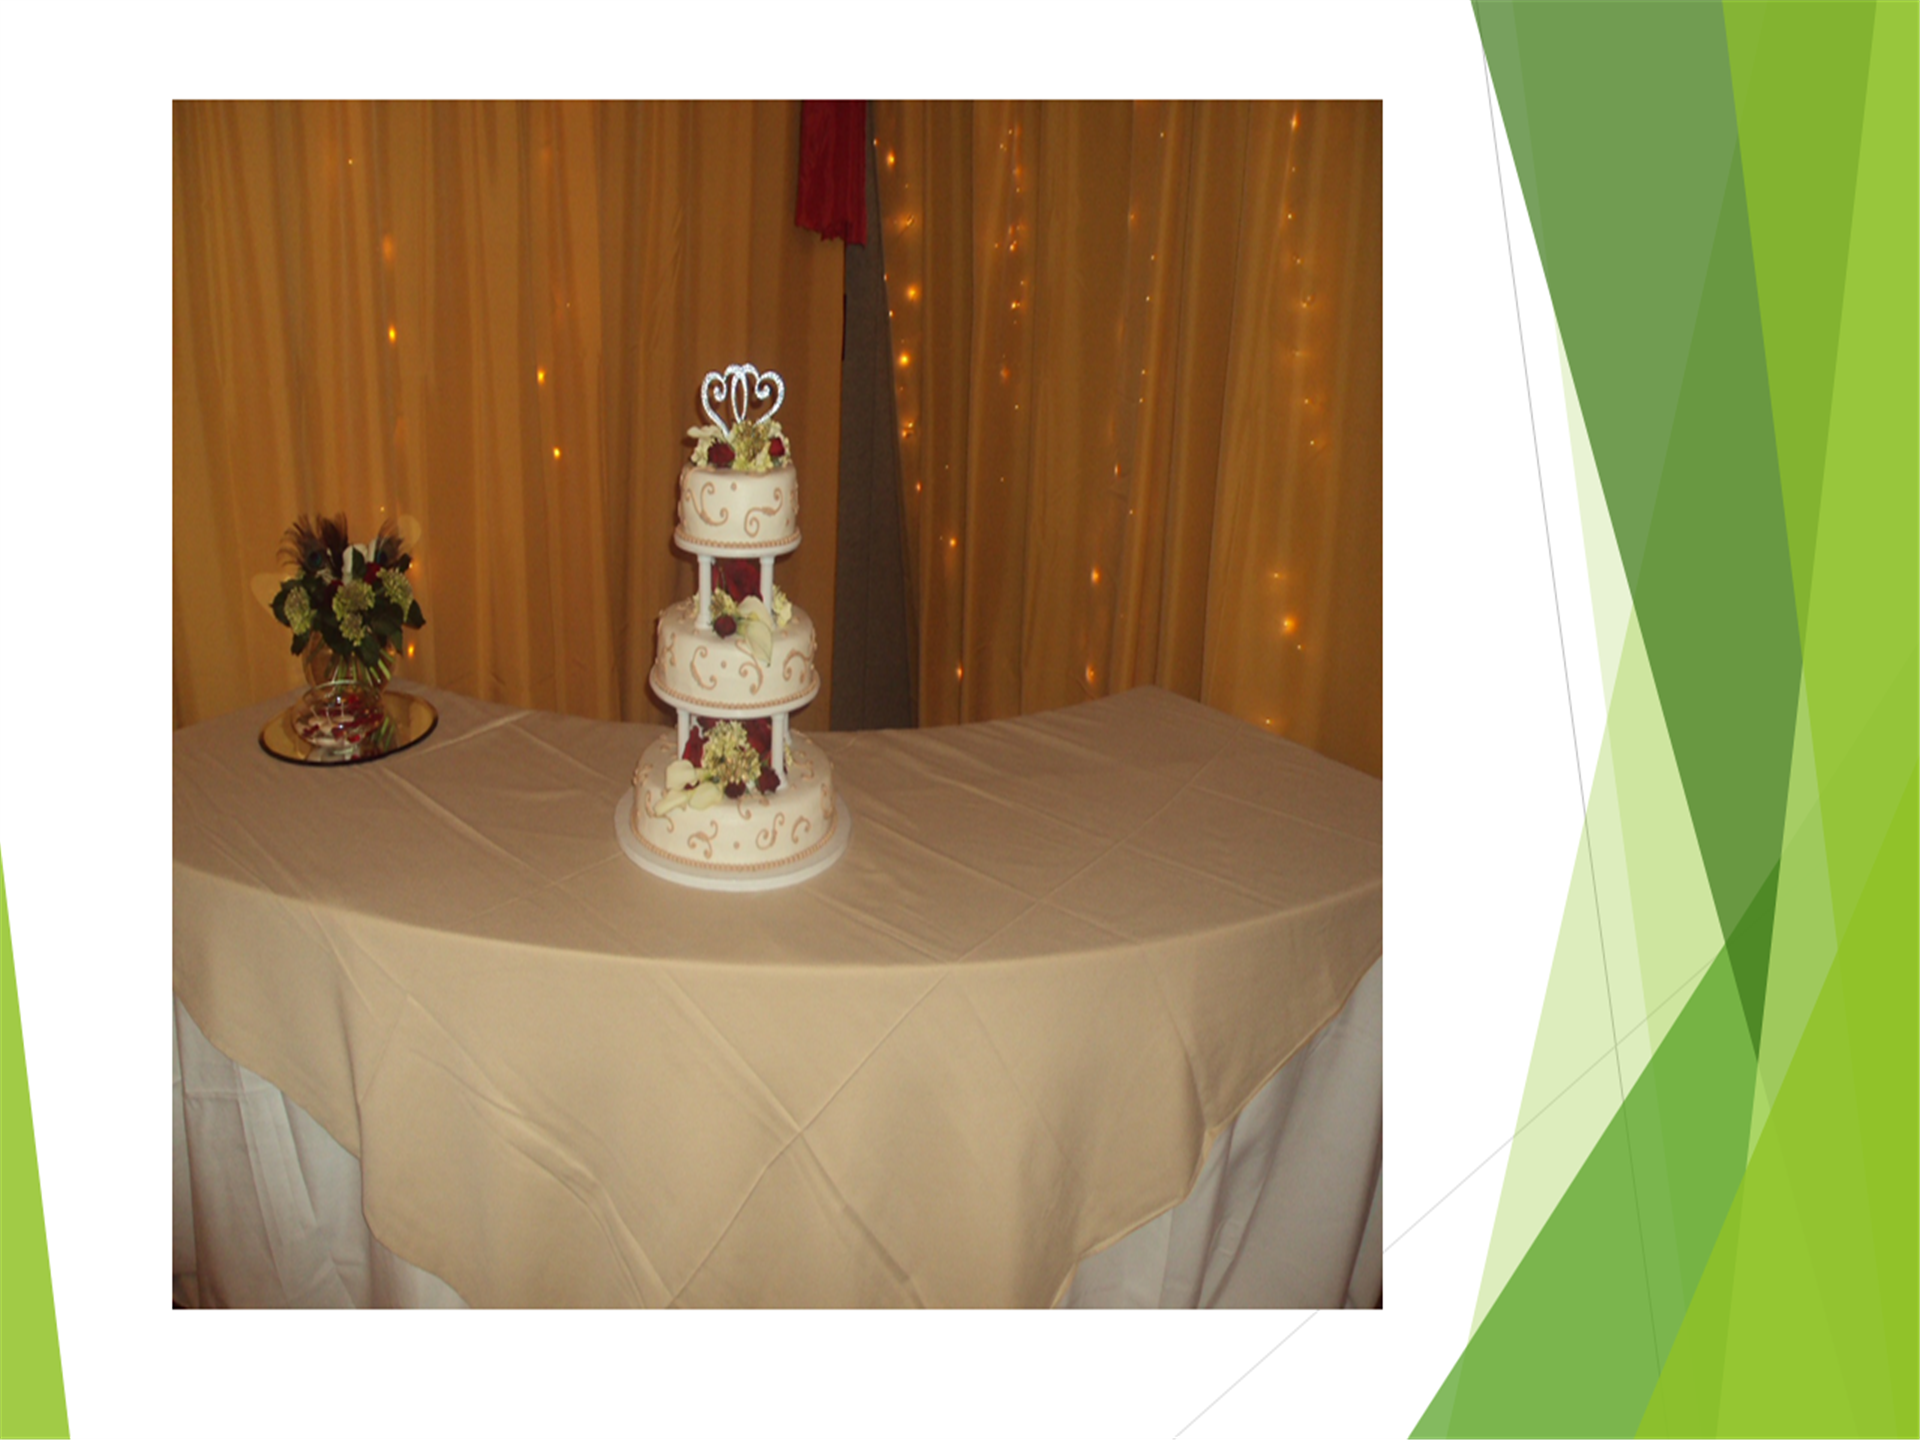 three tier wedding cake on a table with string lights in the background